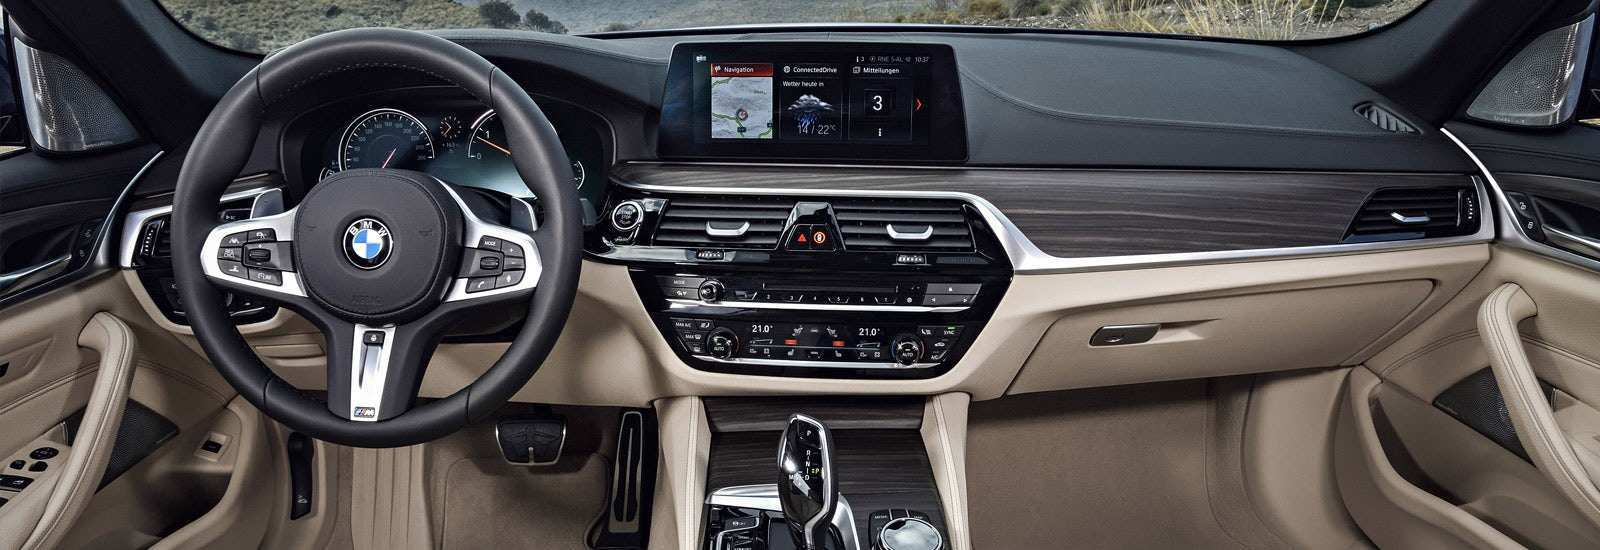 68 Best Review New 2019 Bmw 1 Series Style by New 2019 Bmw 1 Series